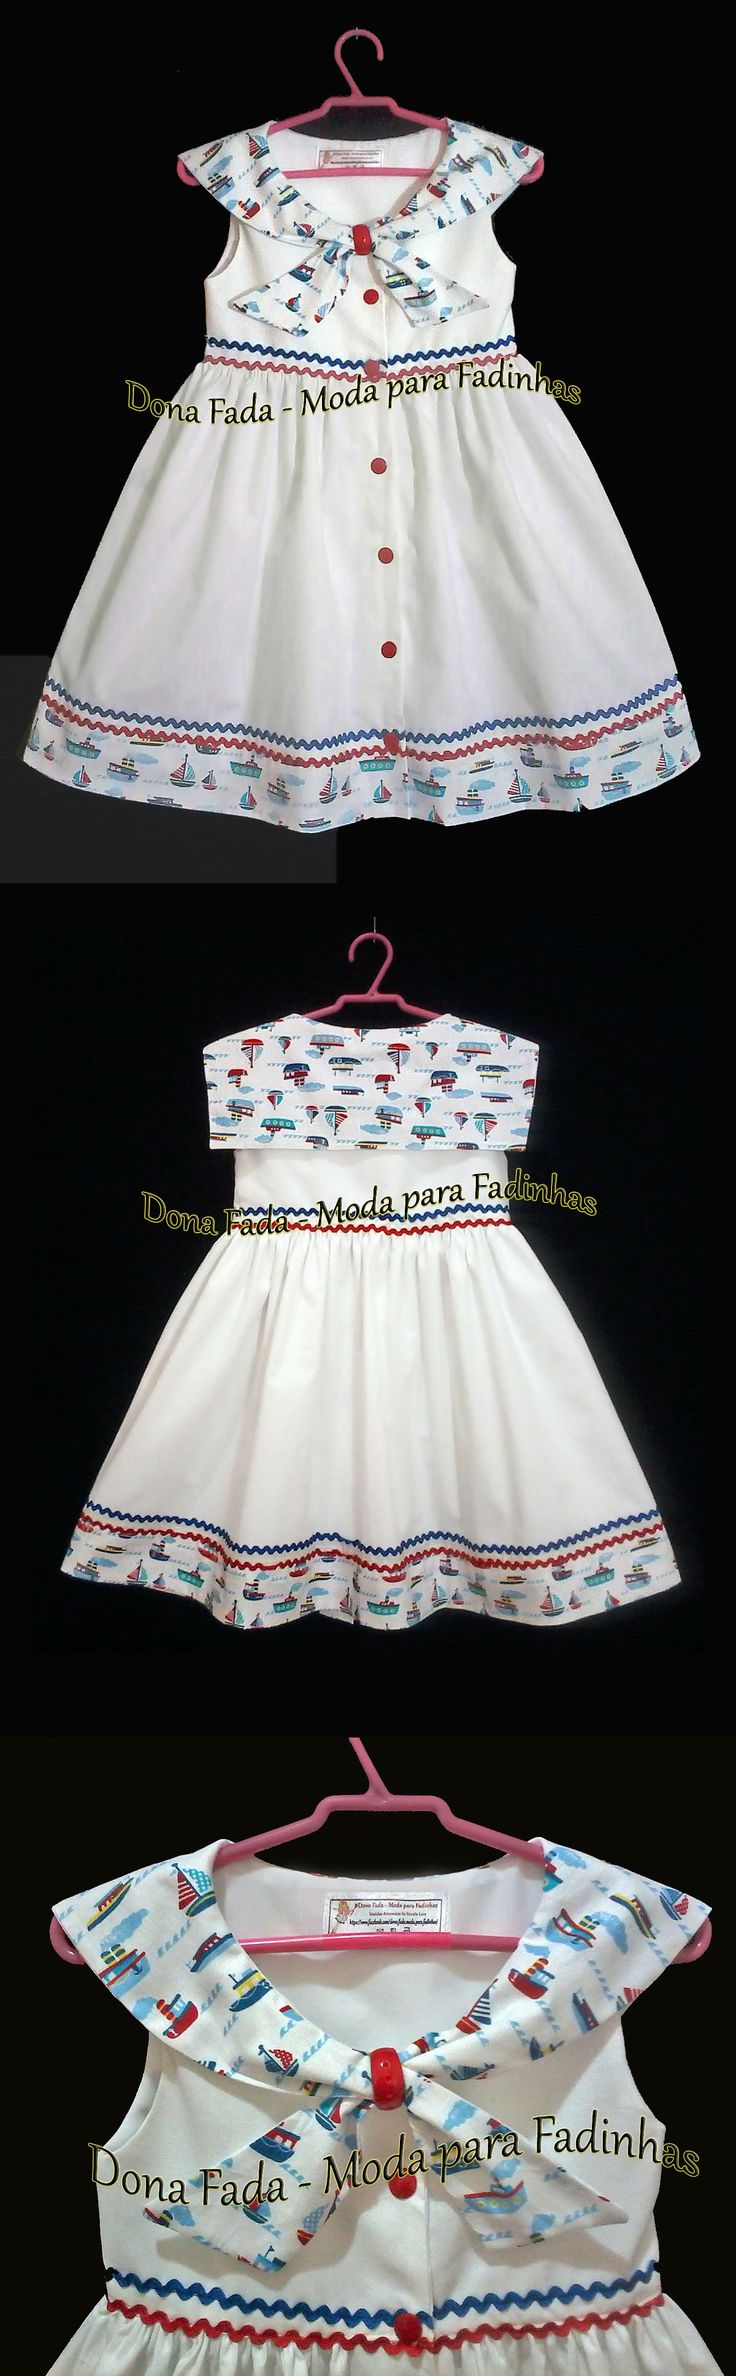 Vestido Marinheiro  - 2 anos_______________baby - infant - toddler - kids - clothes for girls - - - https://www.facebook.com/dona.fada.moda.para.fadinhas/